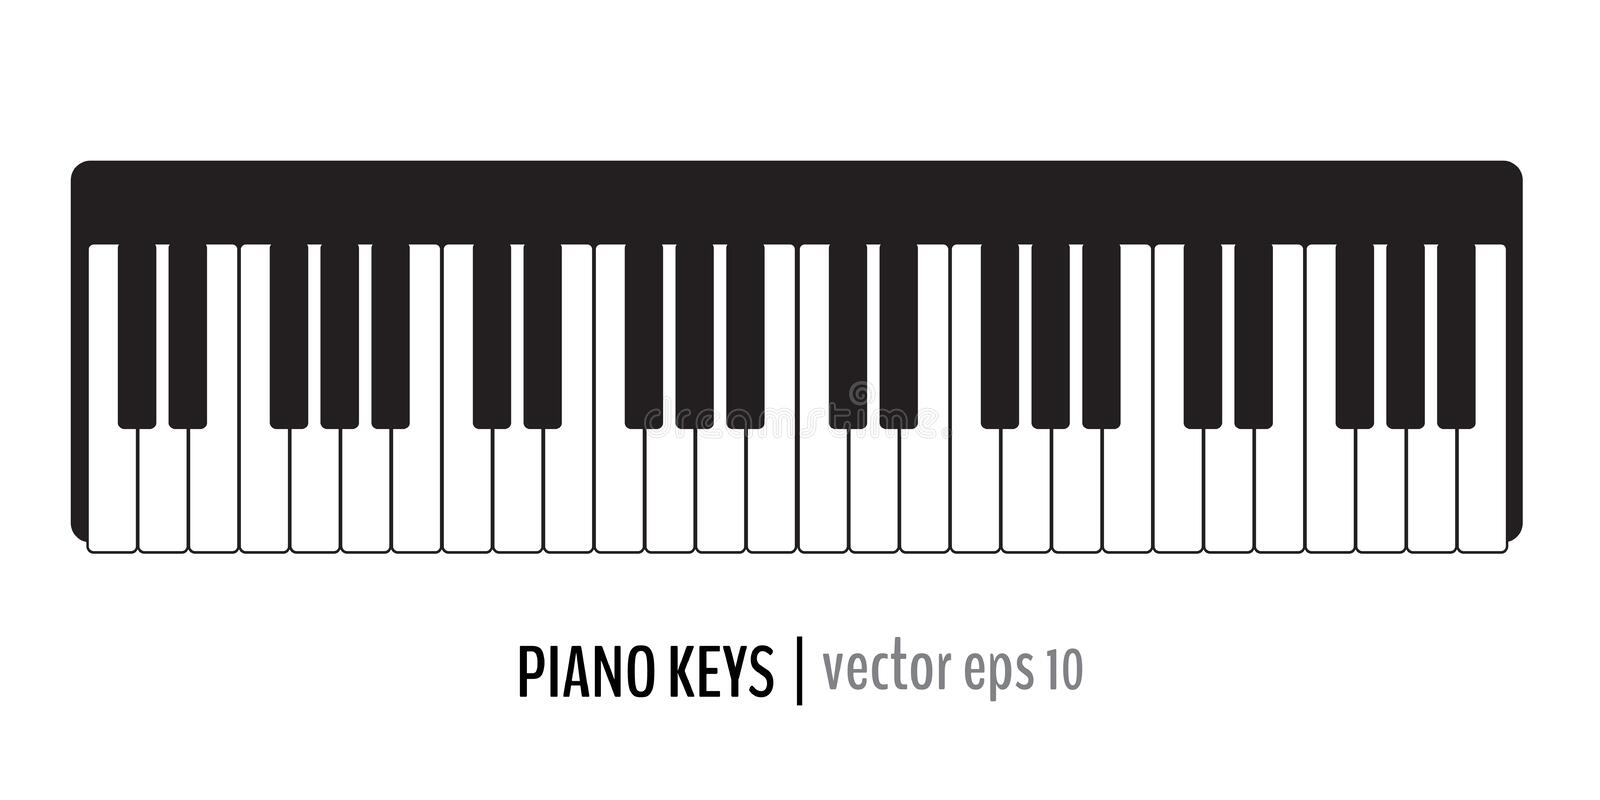 Classic piano keys royalty free stock images